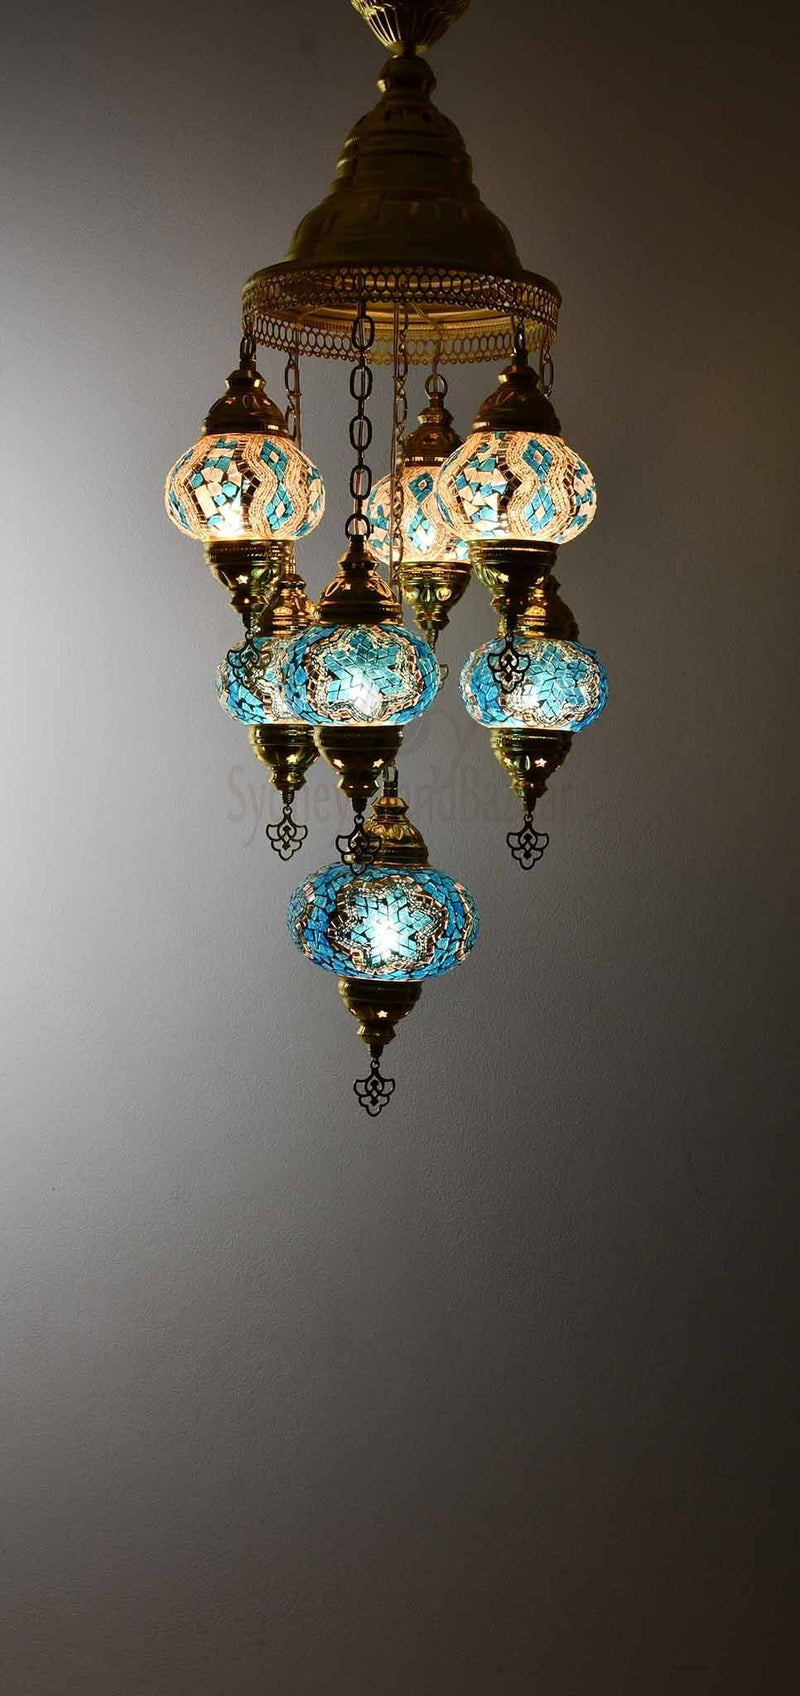 Turkish Mosaic Pendant Light 7 Globes in Gold Lighting Sydney Grand Bazaar Turquoise